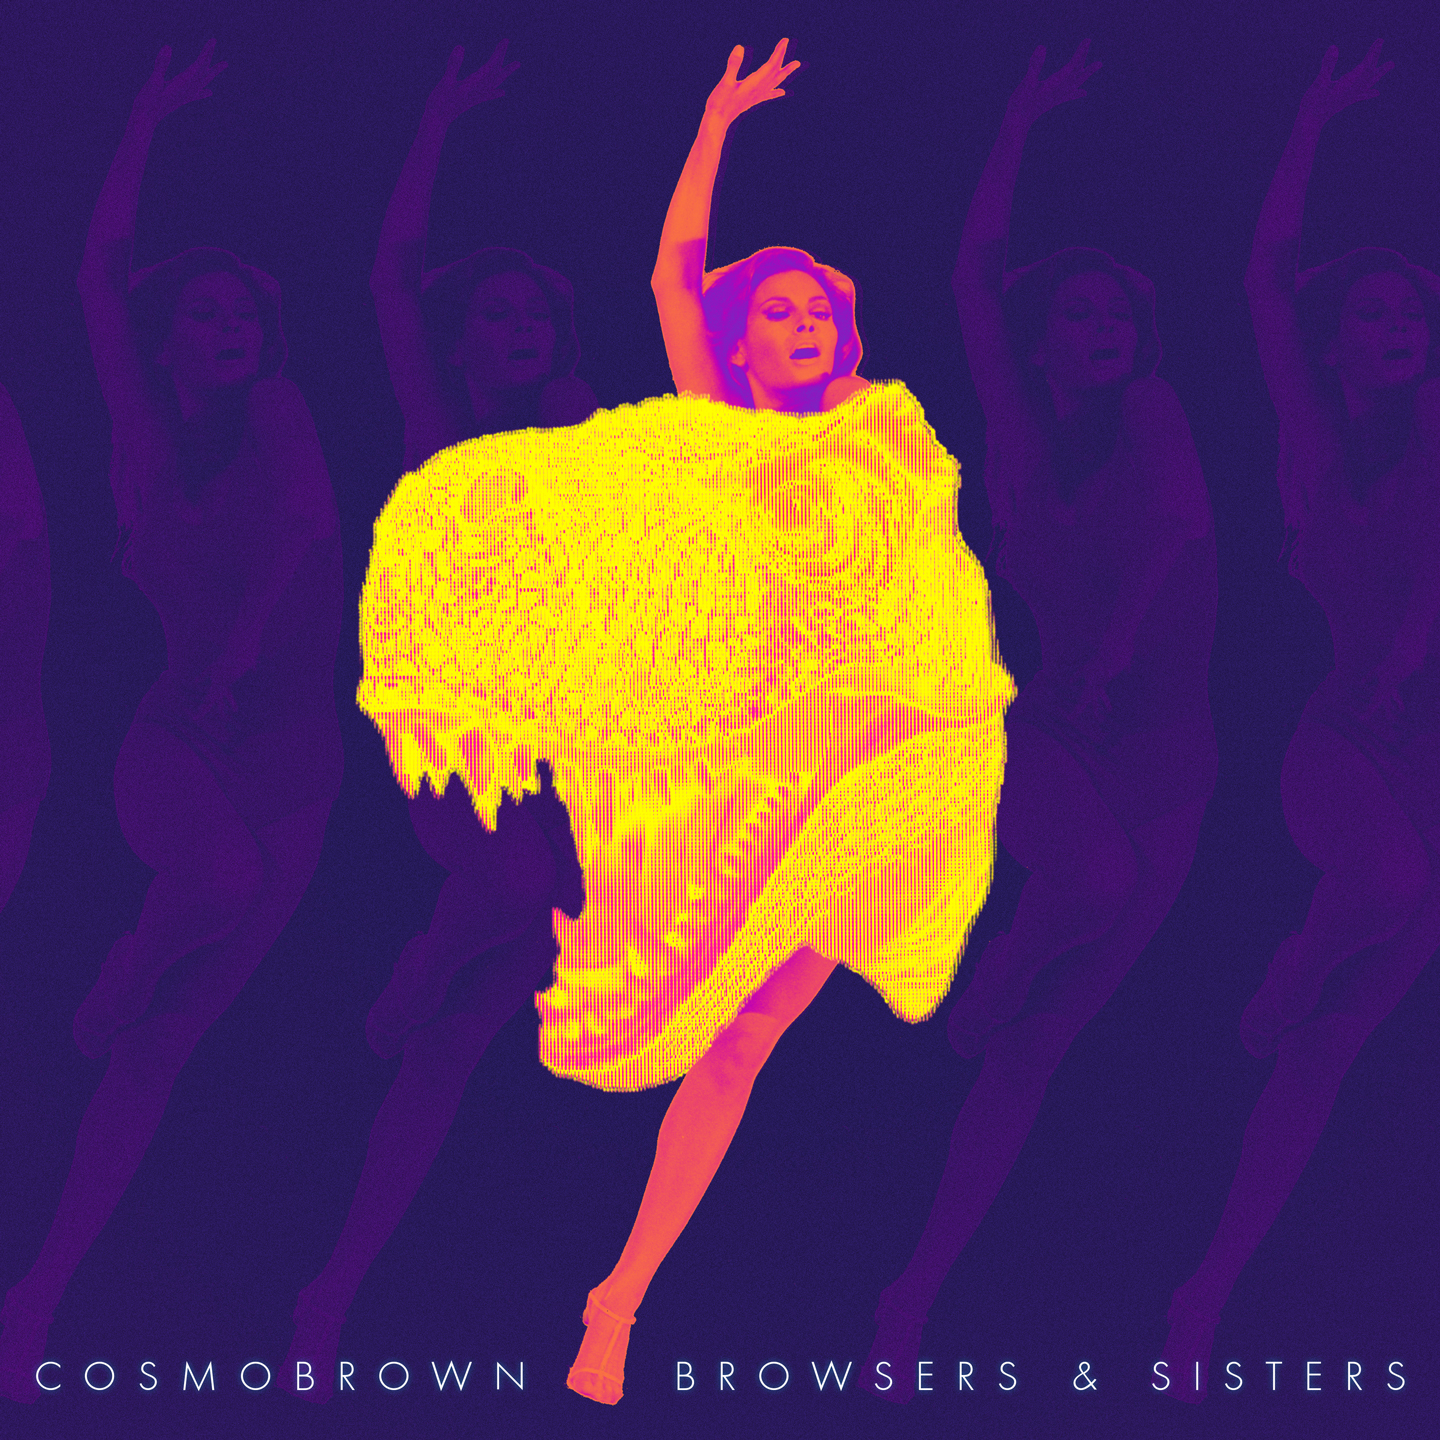 COSMOBROWN_BROWSERS___SISTERS_pochette_-1464701634.jpg